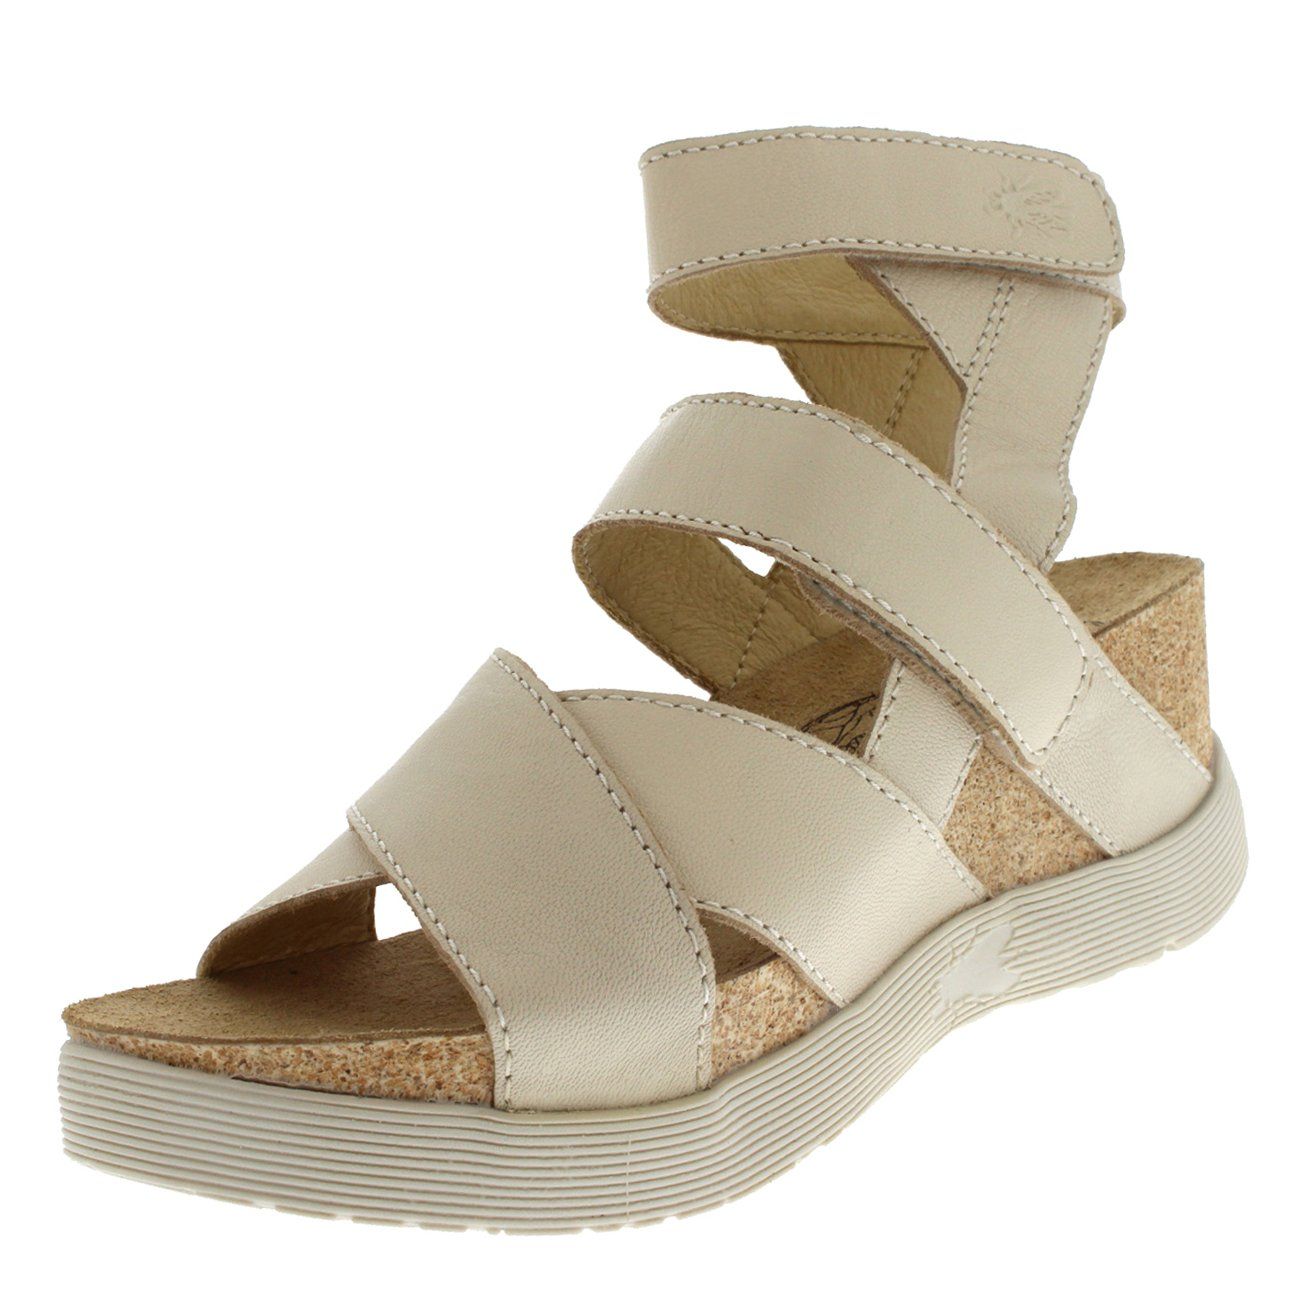 FLY London Womens Wedge Leather Velcro Open Toe Summer Cut Out Sandals - Mousse Off White - 10